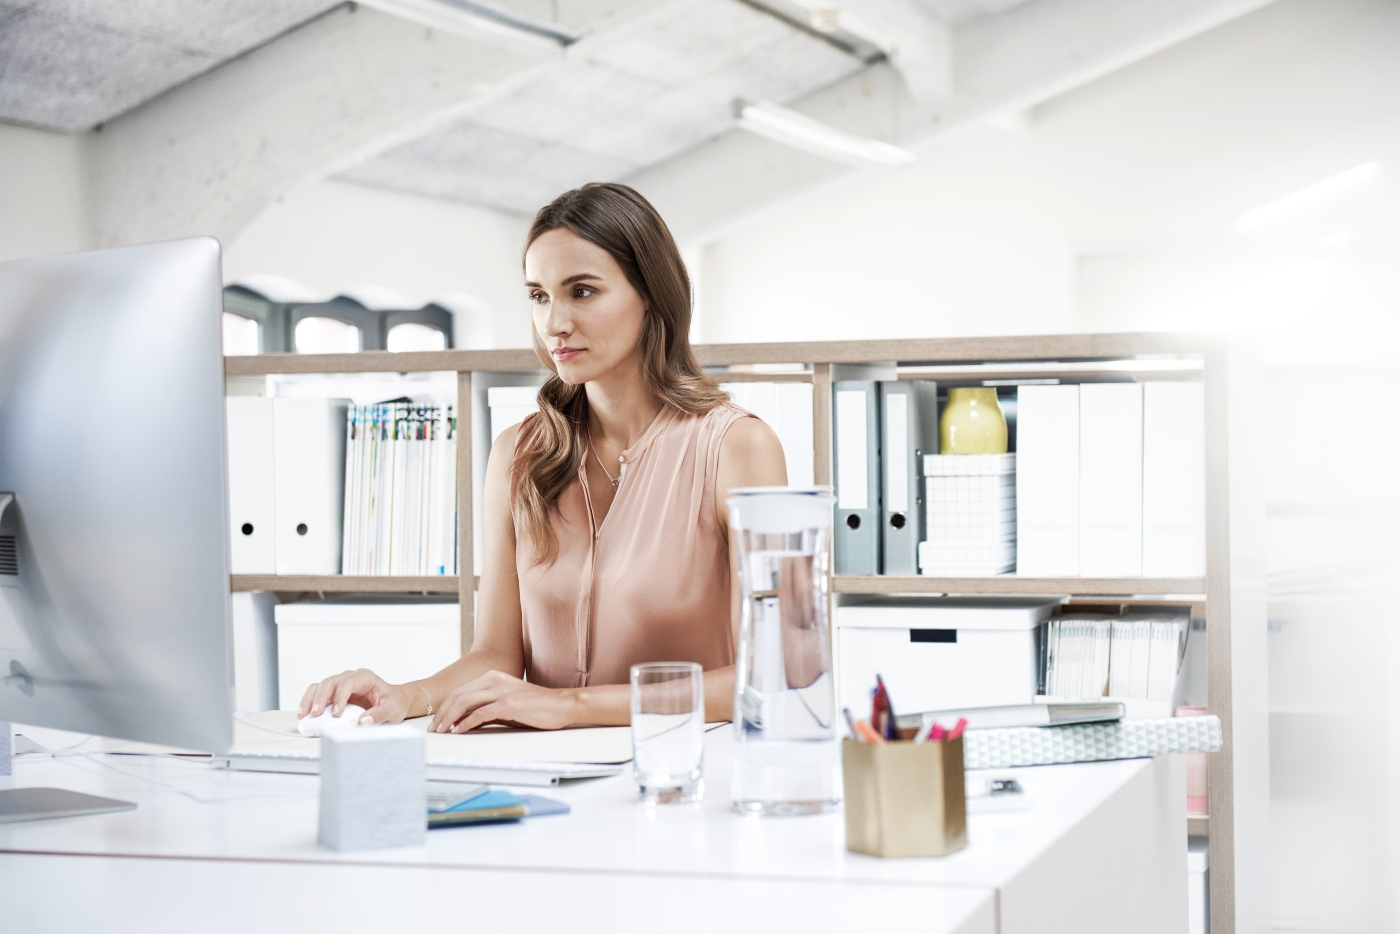 Fillserve-STCHome-Office-woman.jpg